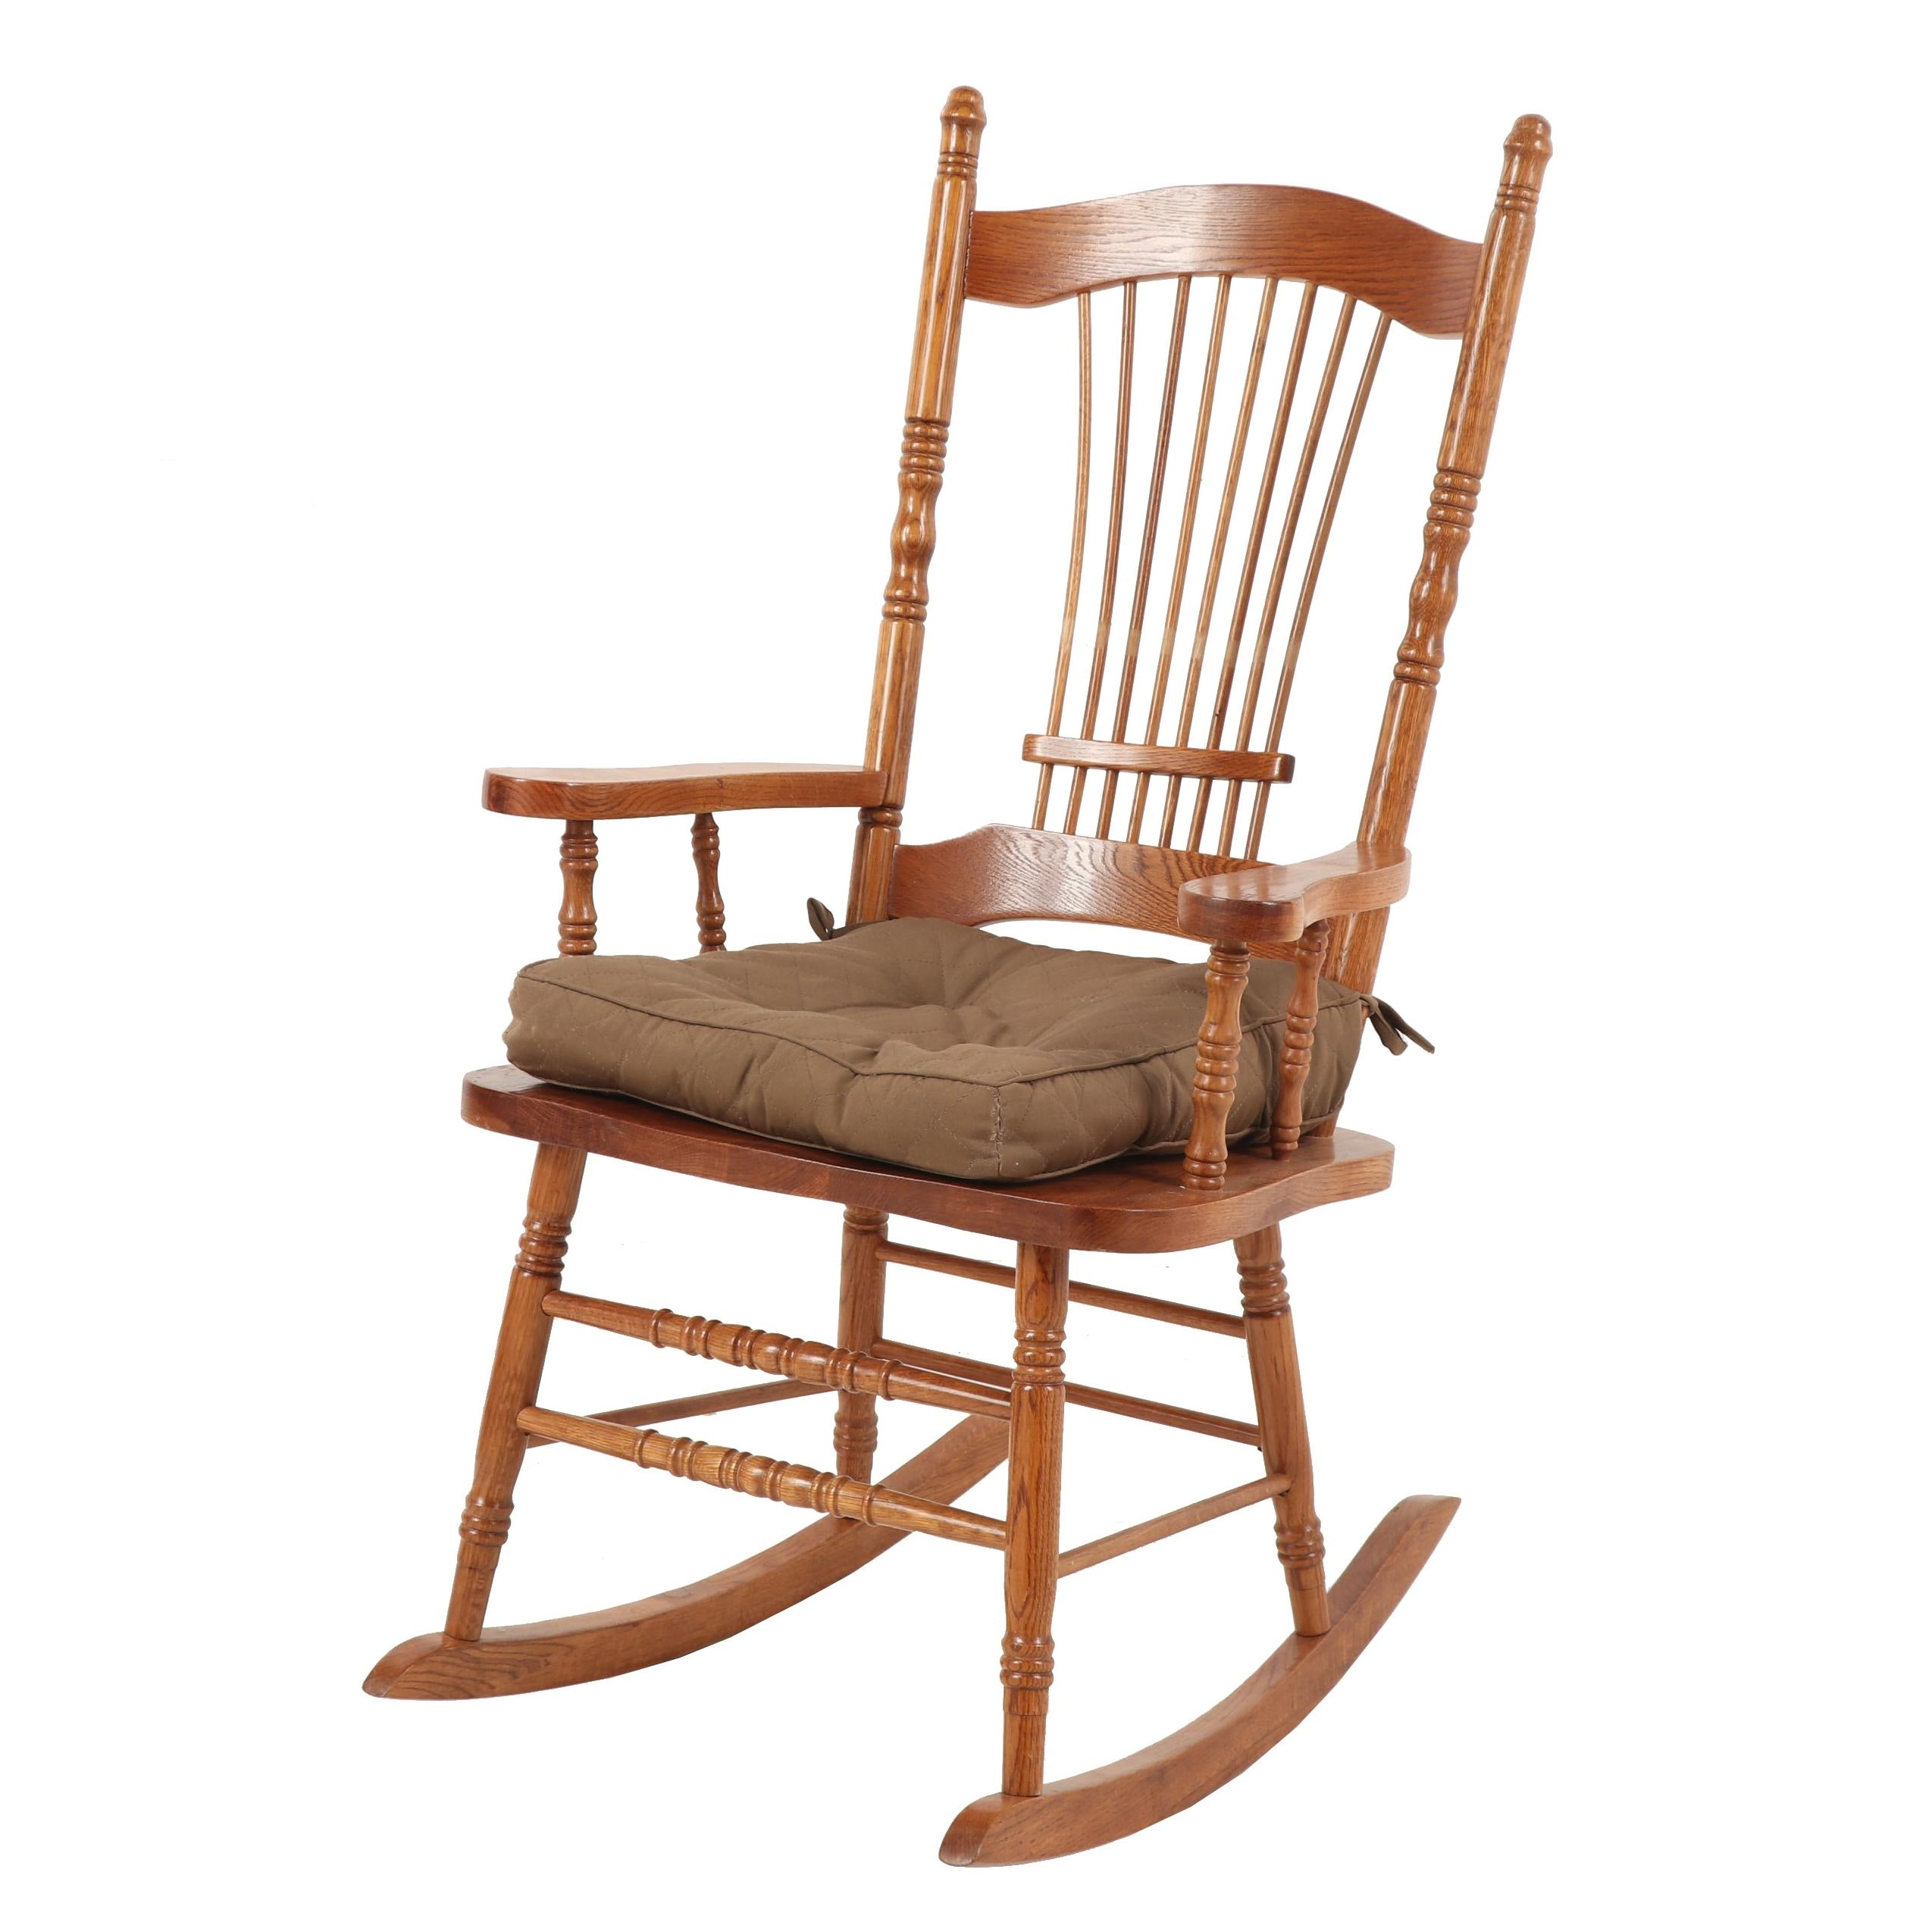 Oak Rocking Chair, Mid to Late 20th Century